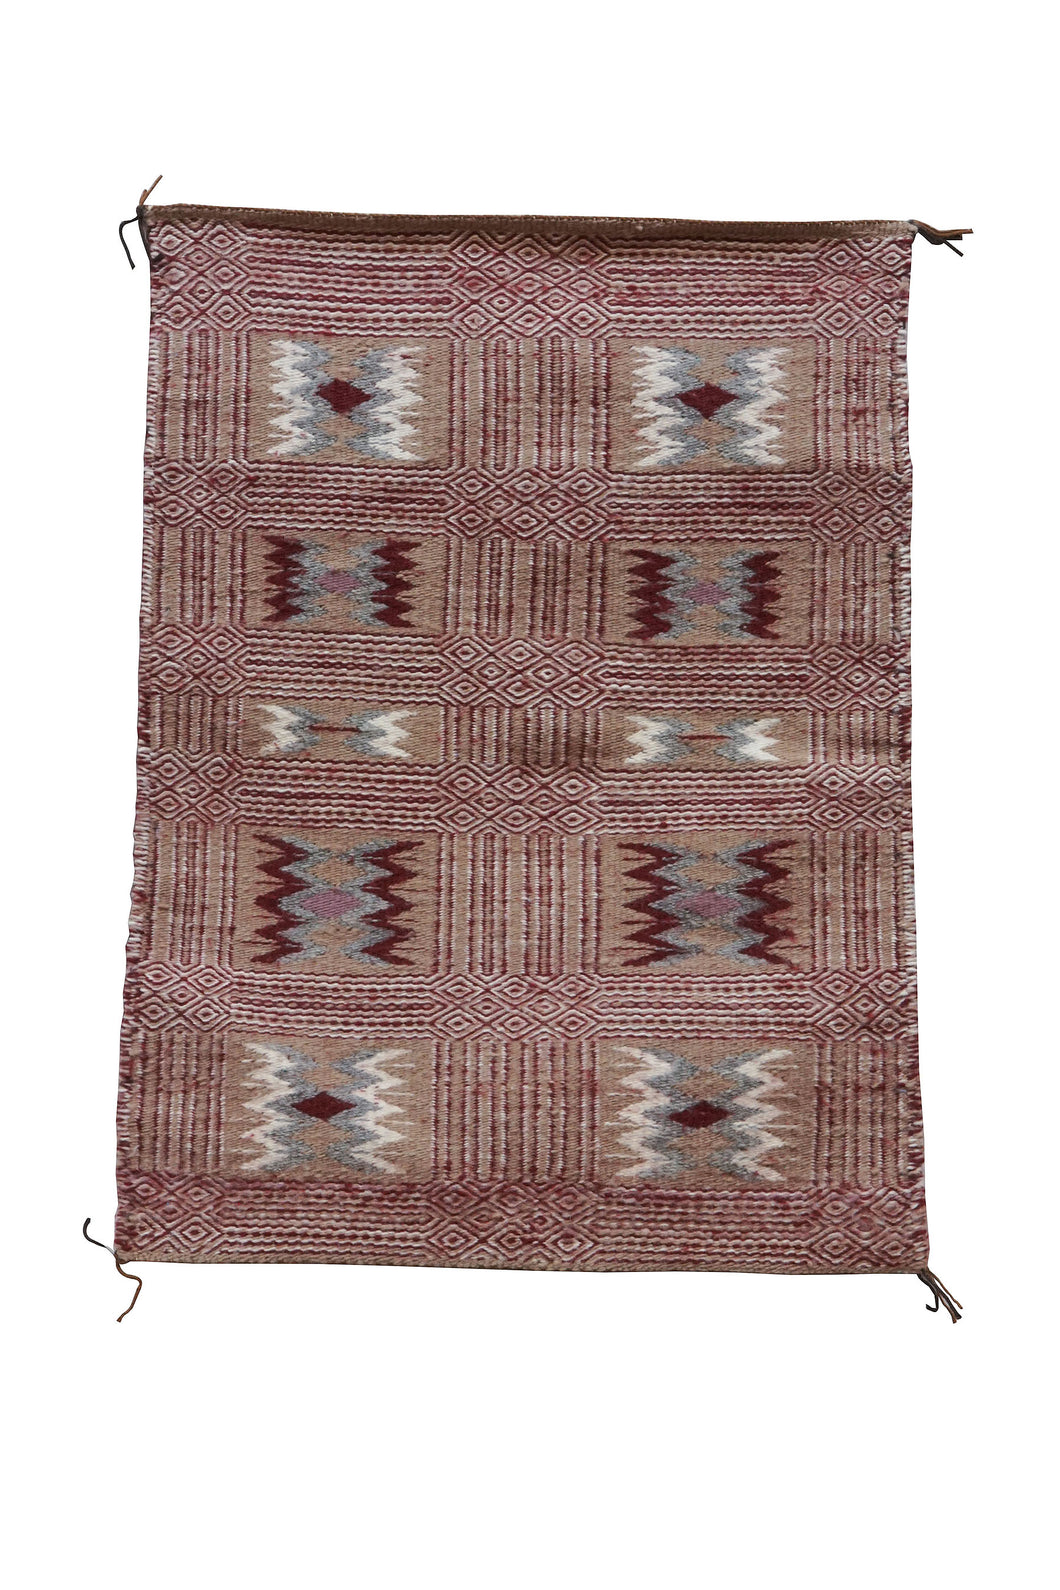 Lucy Wilson, Two Faced Blanket, Navajo Handwoven, 82 Year Old Weaver, 31